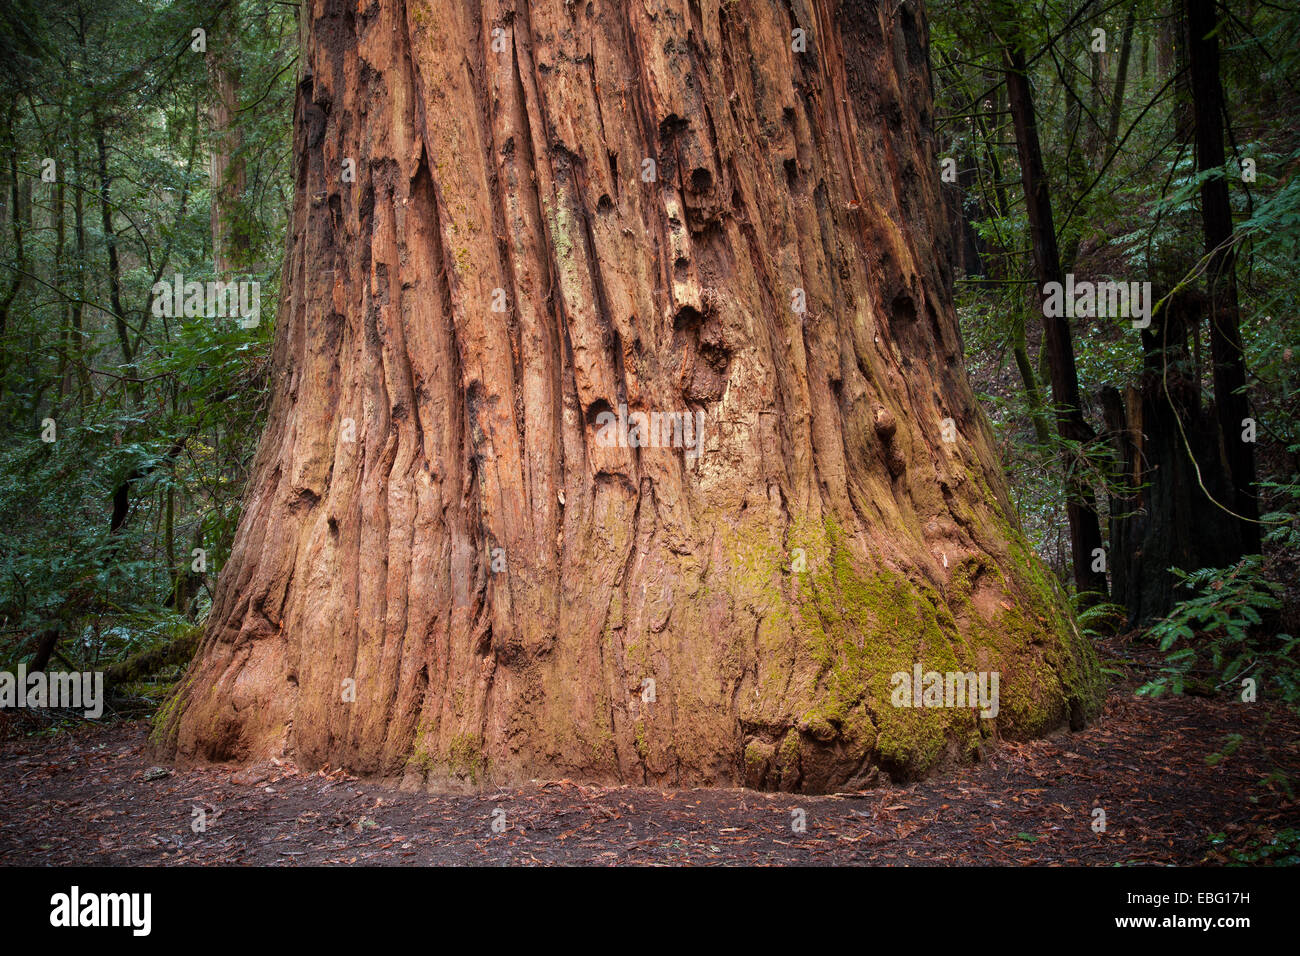 Colonel Armstrong tree. Armstrong Redwoods State Natural Reserve - Stock Image